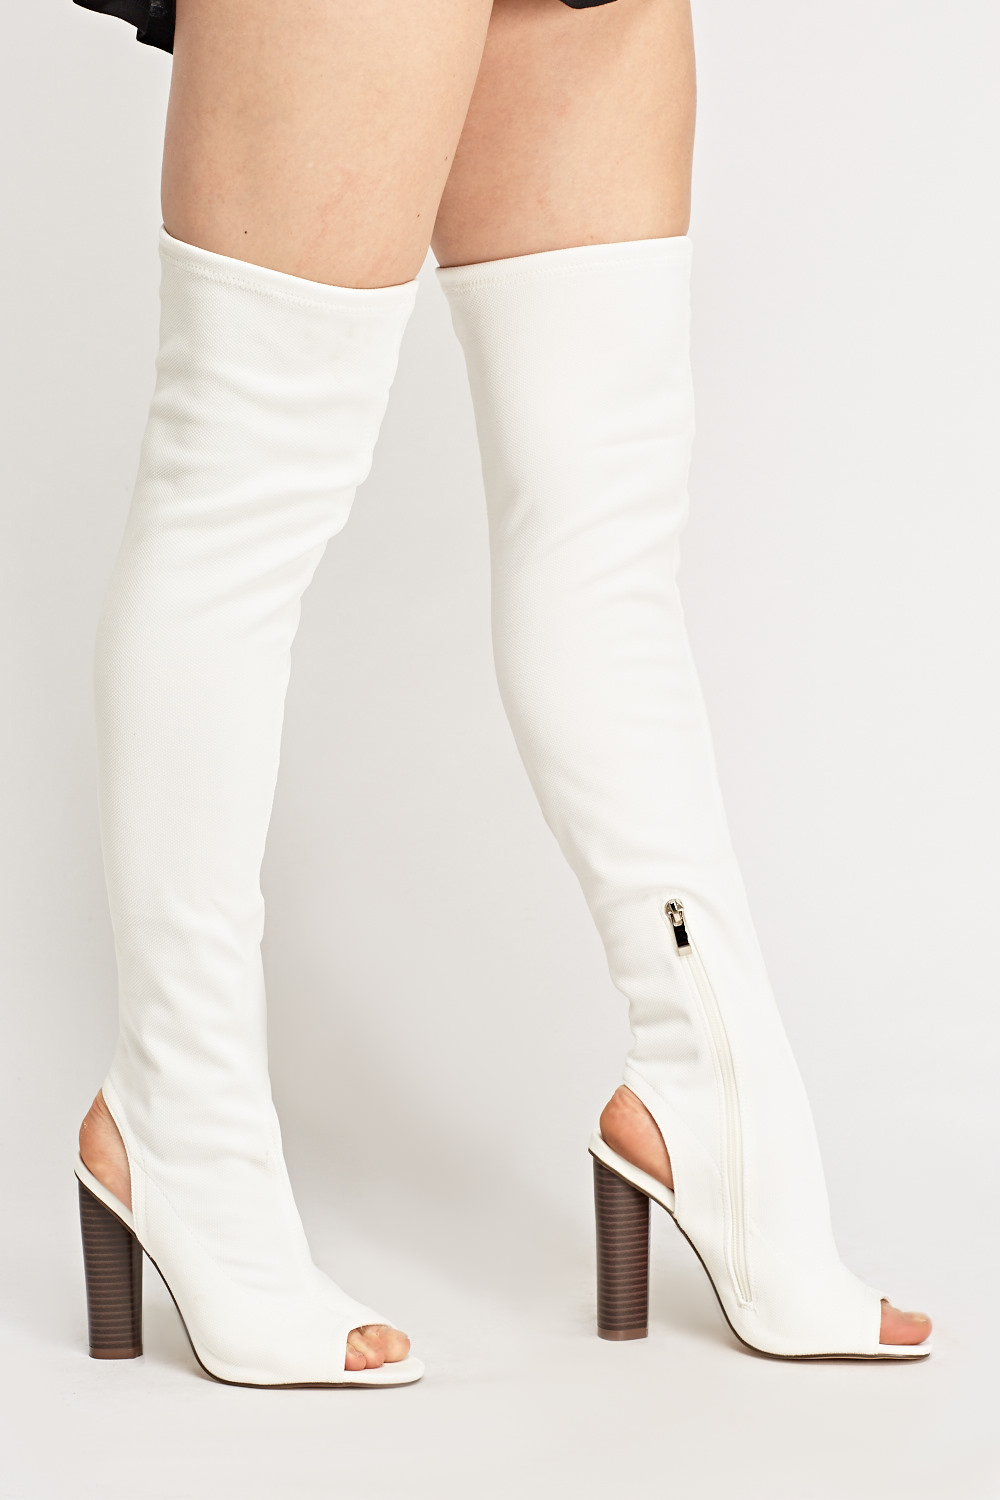 5984d18ae63 Peep Toe Over The Knee Boots - Just £5